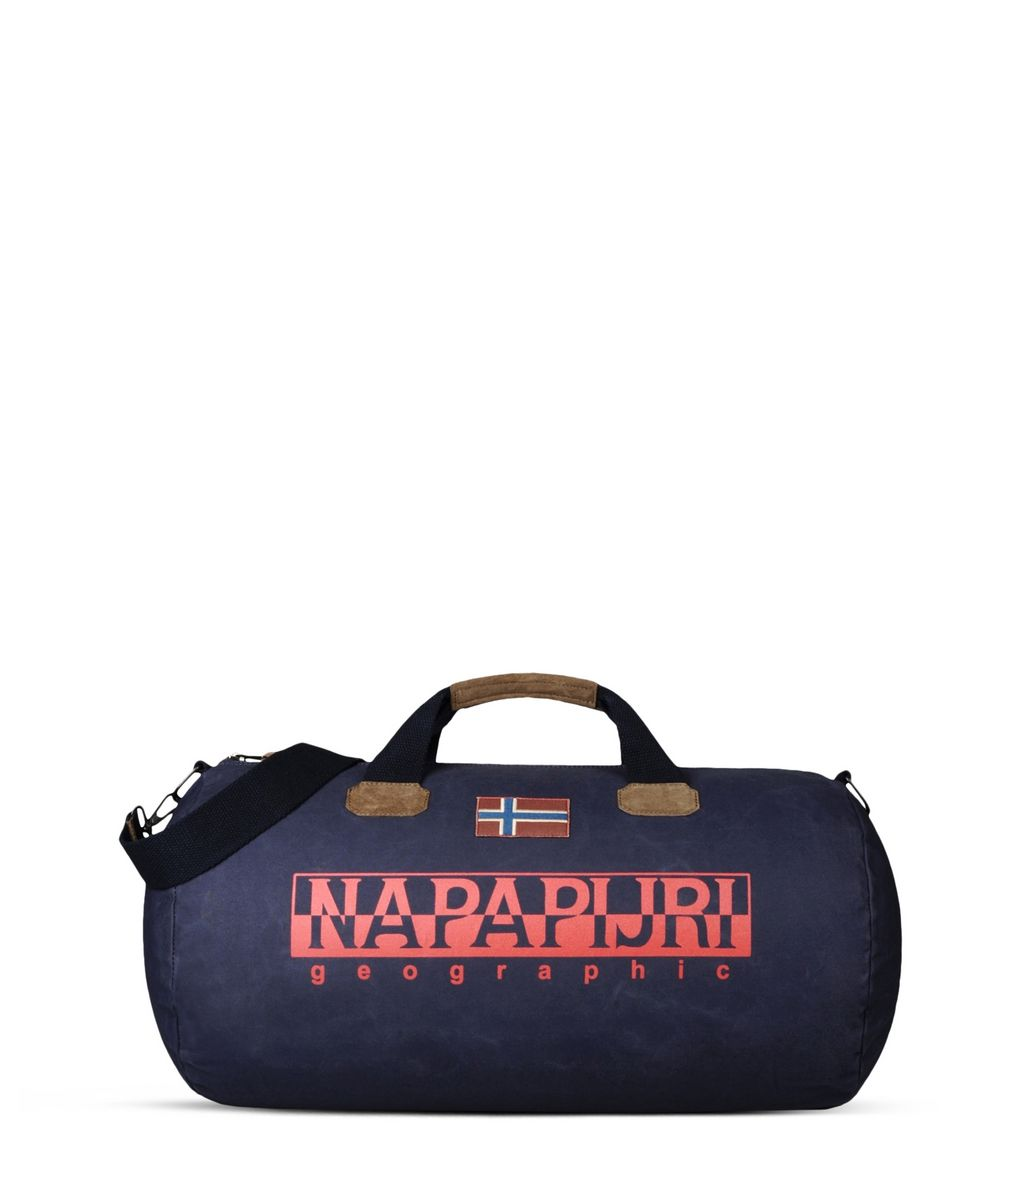 NAPAPIJRI BERING   TRAVEL BAG,DARK BLUE